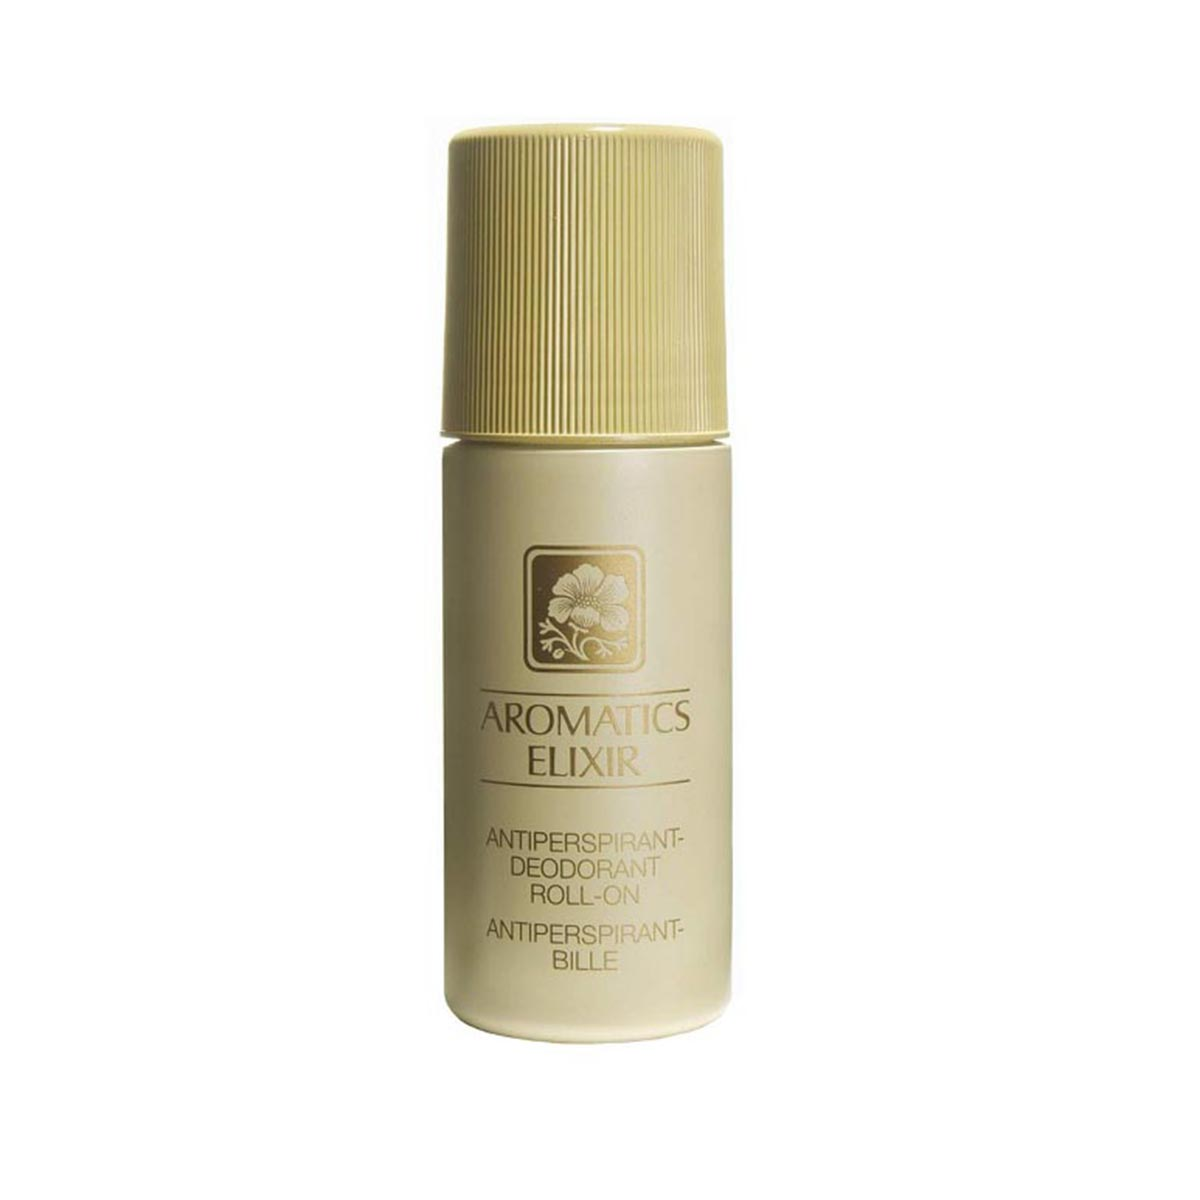 Clinique aromatics elixir roll on 75ml